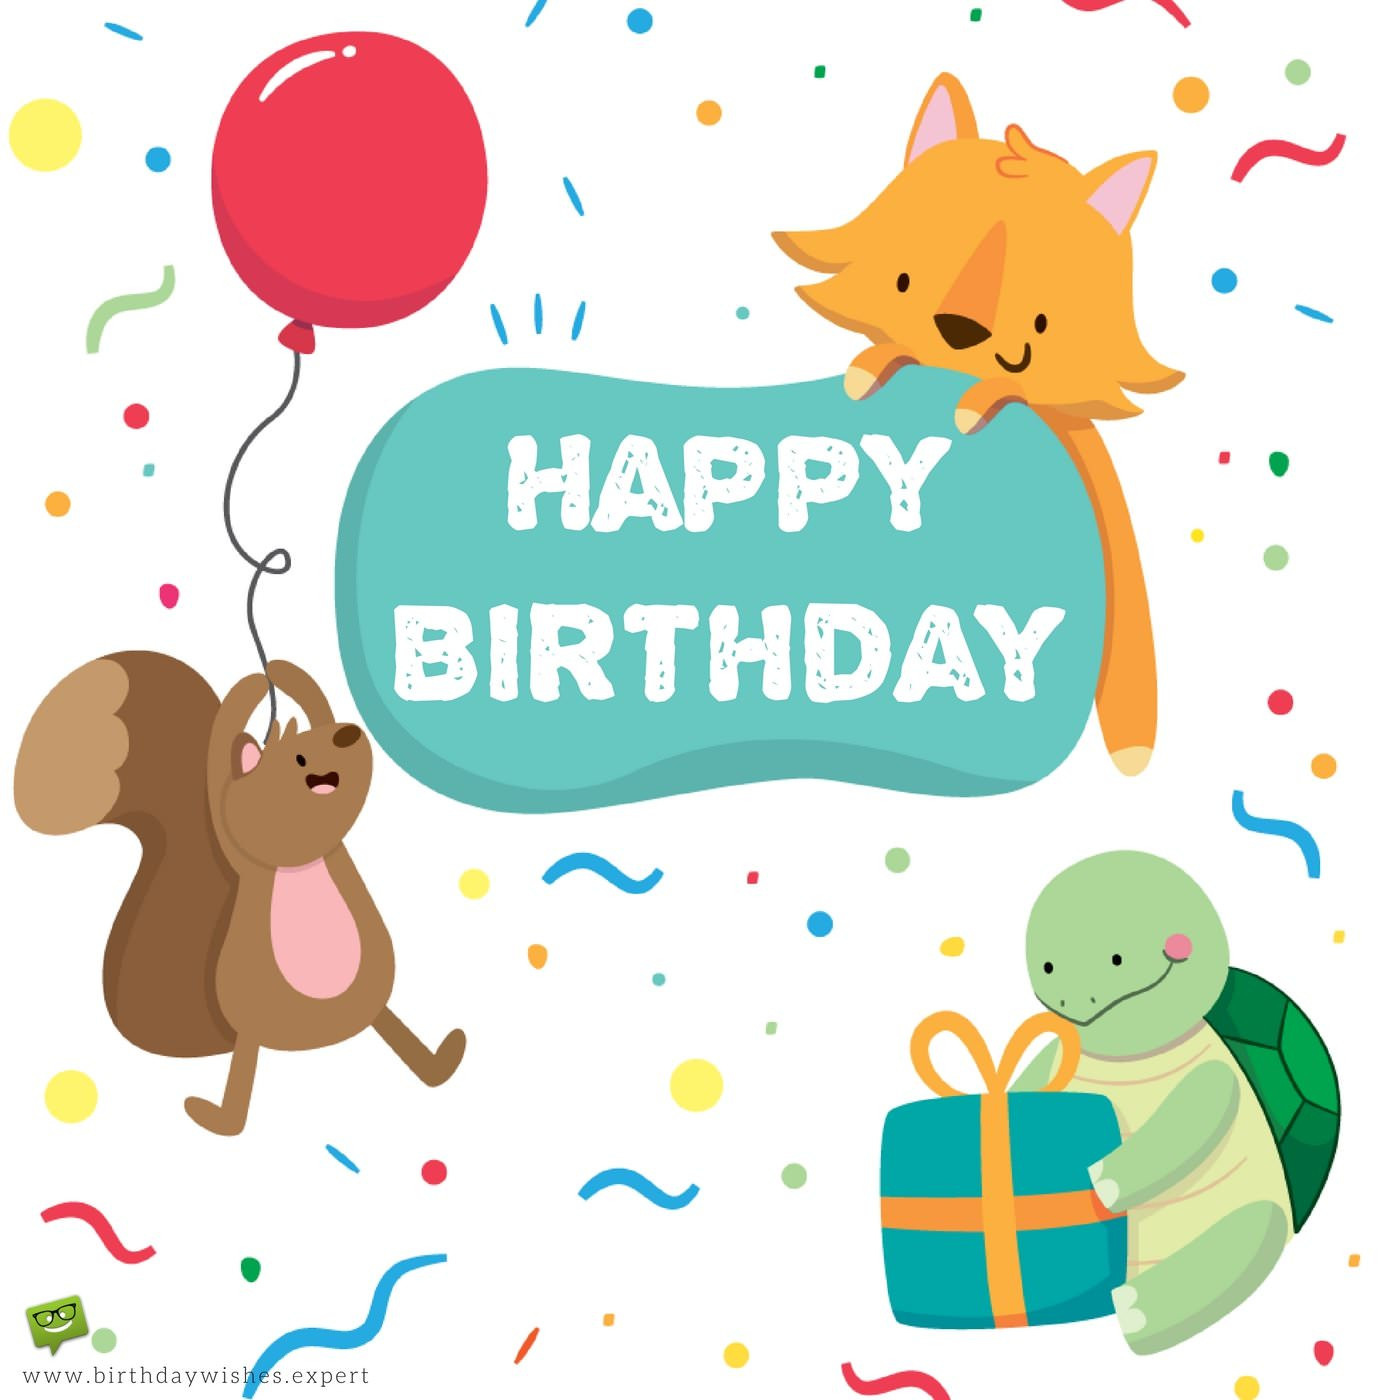 Best ideas about Happy Birthday Wishes For Kids . Save or Pin Birthday Wishes for Babies Now.